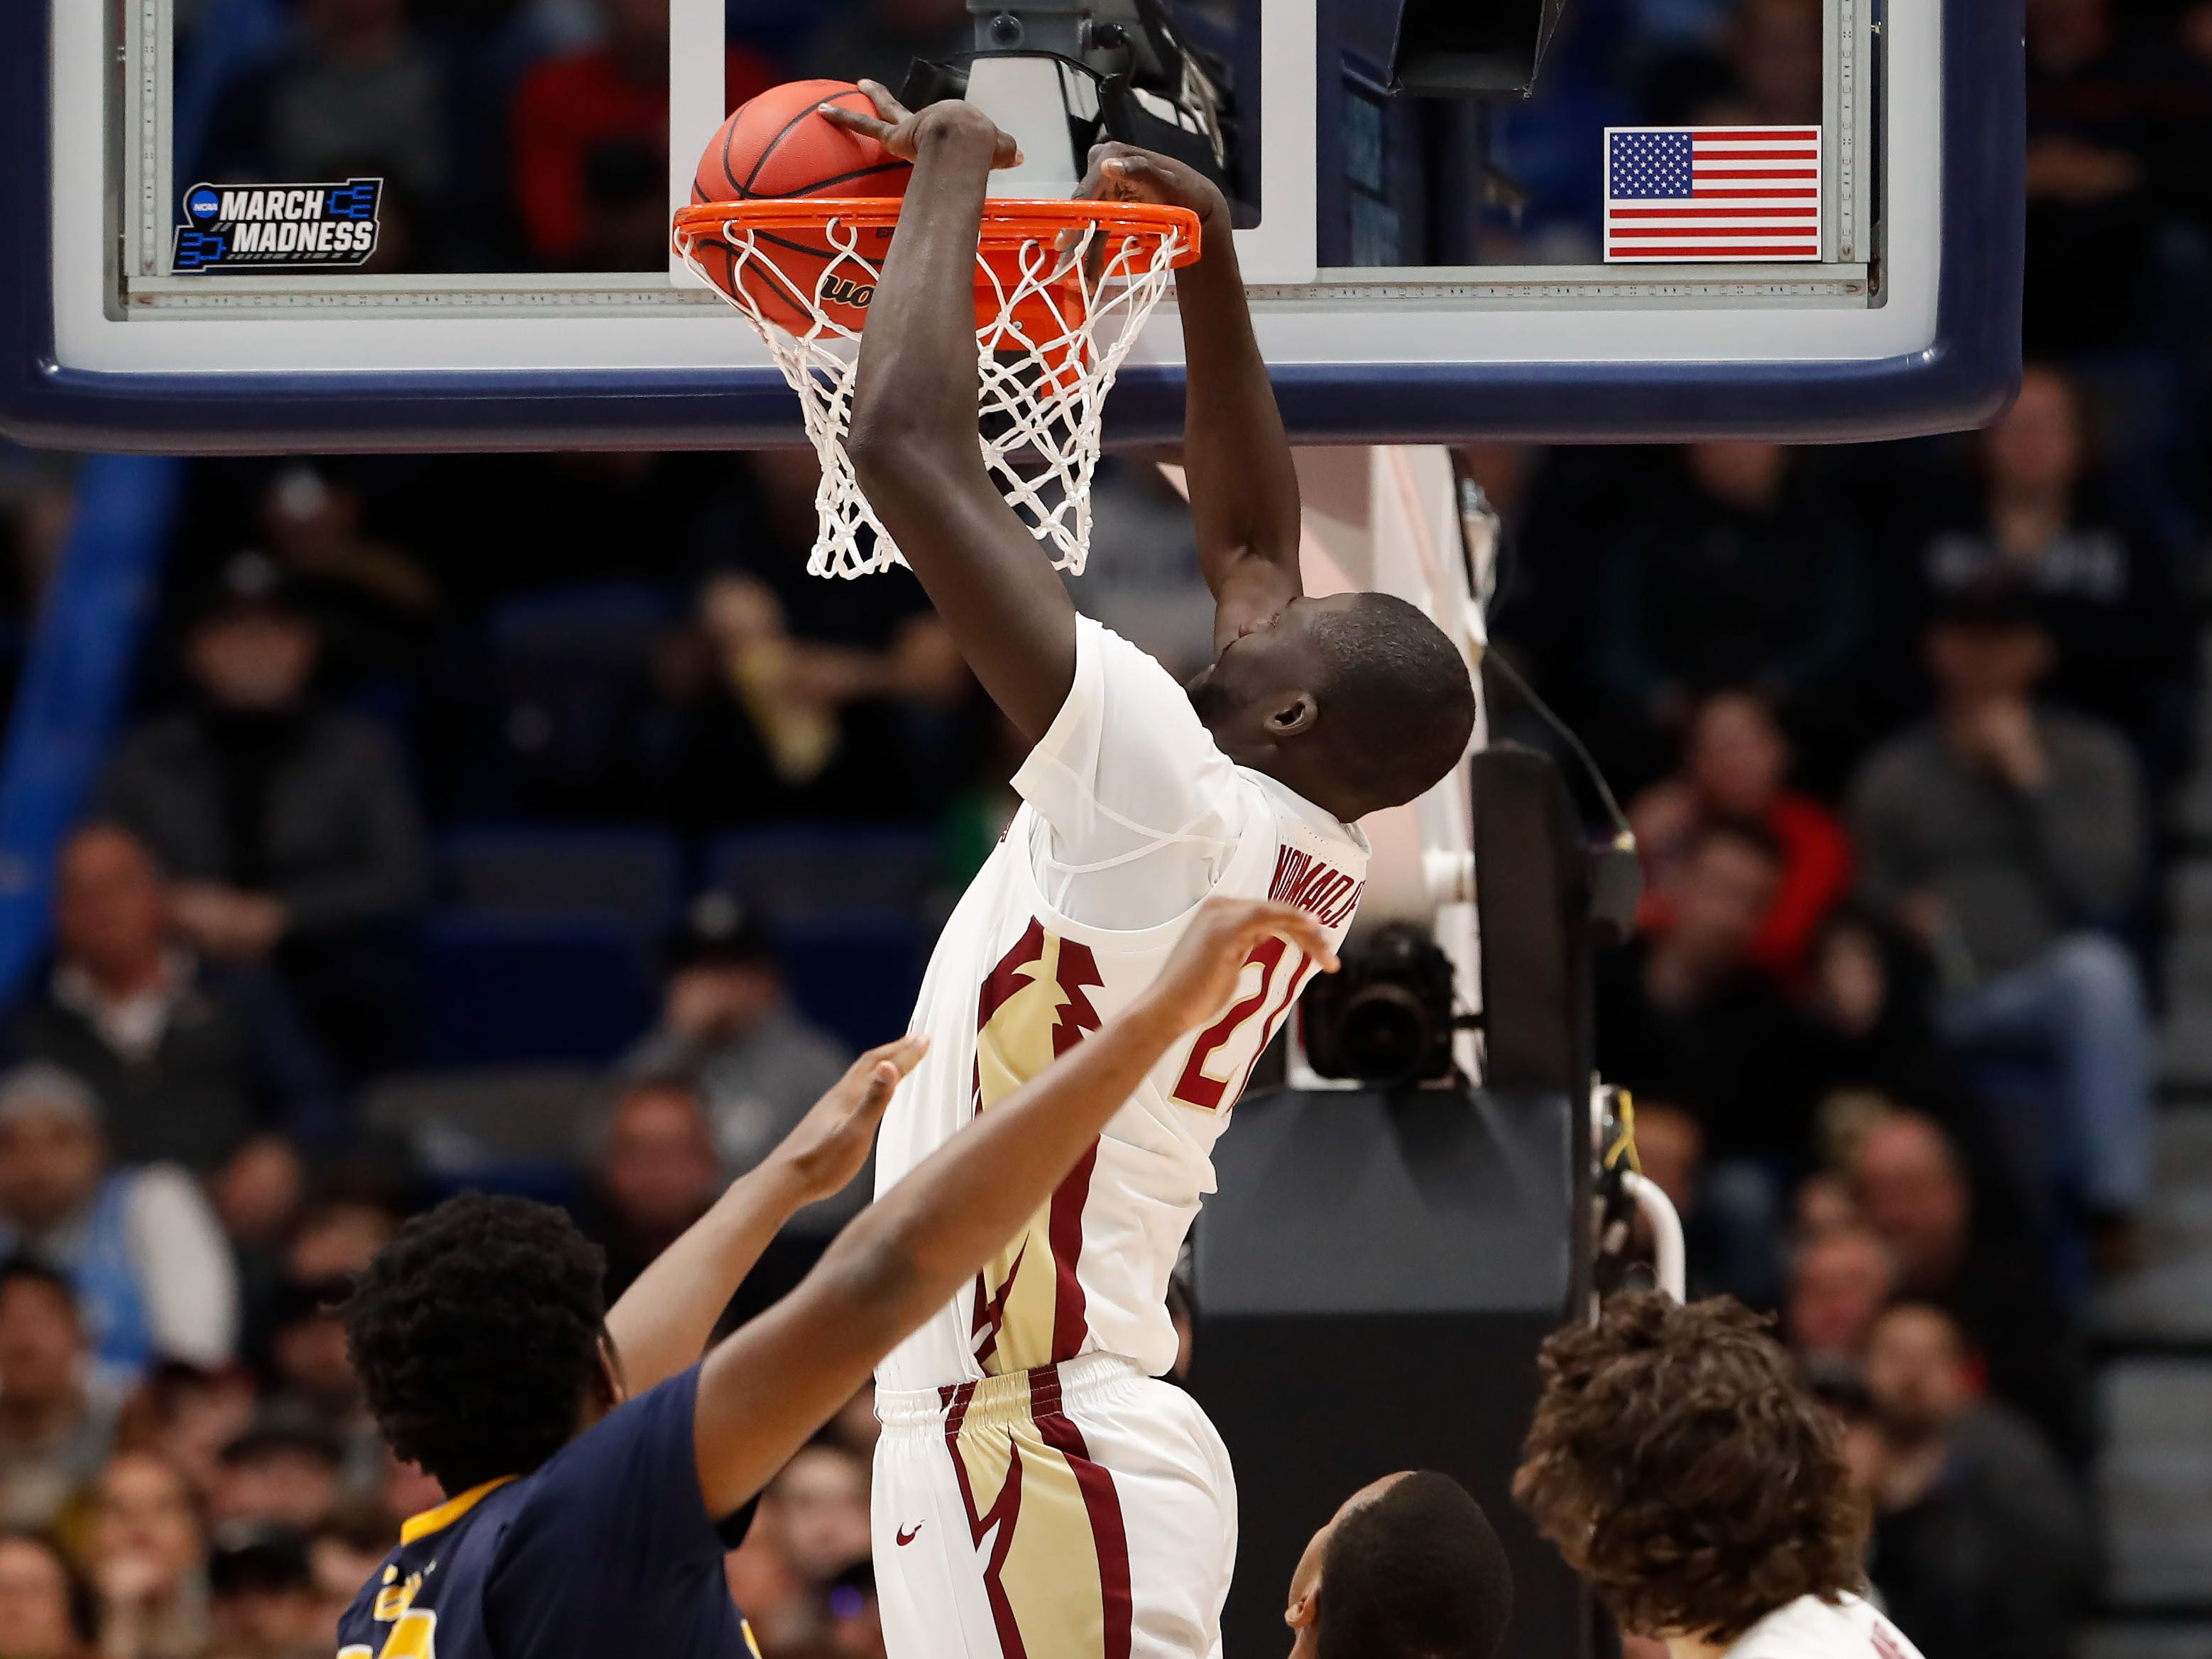 Mar 23, 2019; Hartford, CT, USA; Florida State Seminoles center Christ Koumadje (21) dunks and scores against the Murray State Racers during the first half of a game in the second round of the 2019 NCAA Tournament at XL Center. Mandatory Credit: David Butler II-USA TODAY Sports